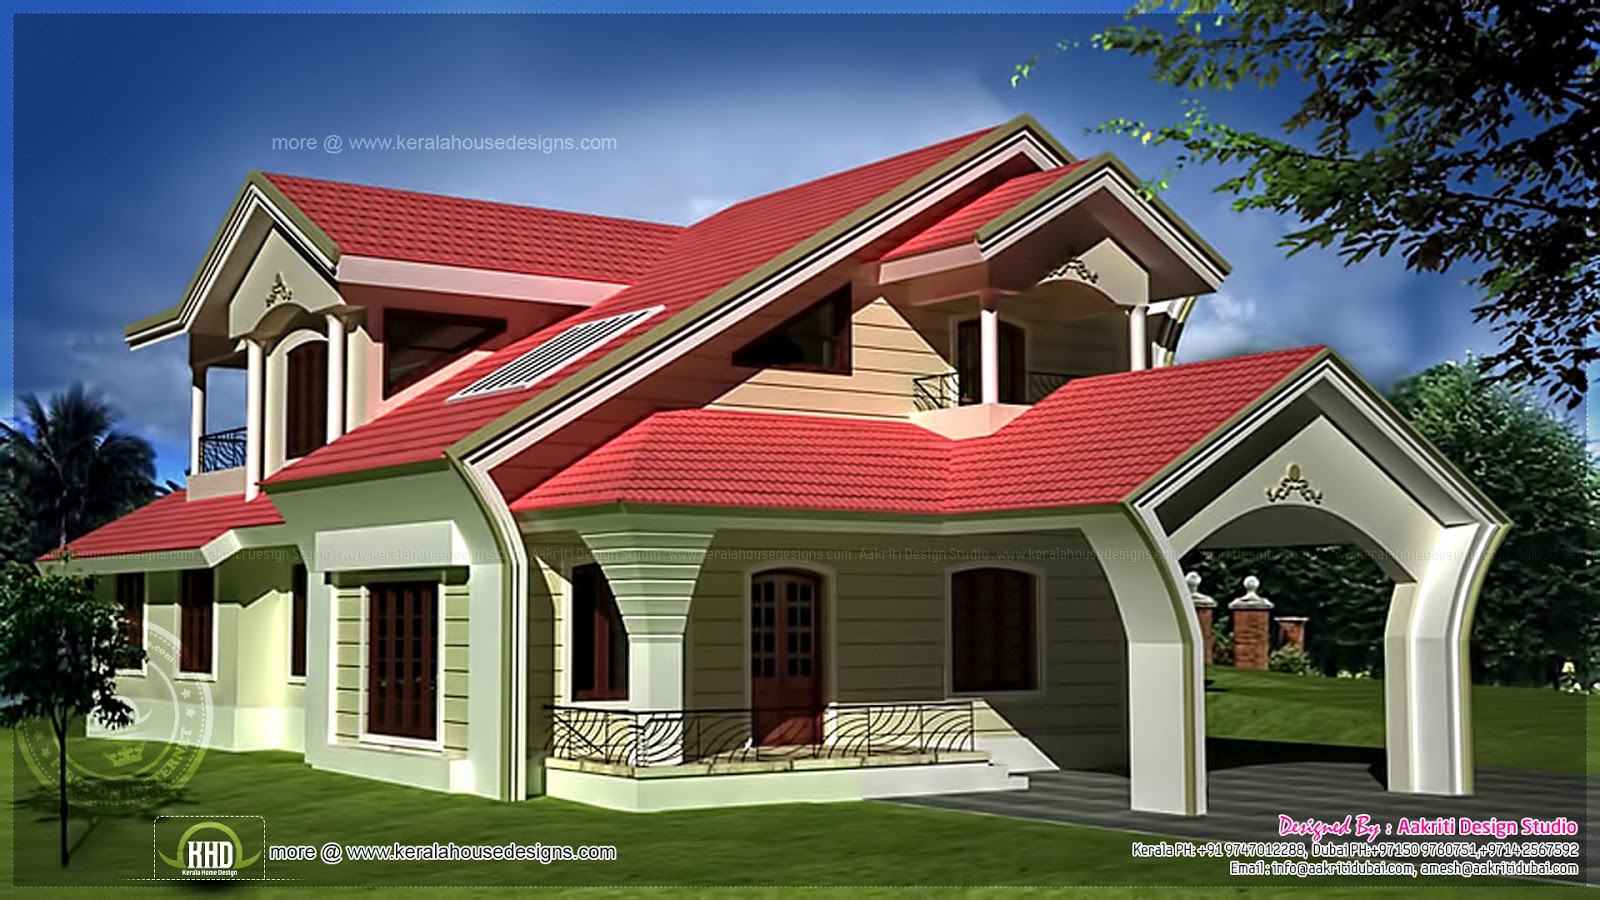 Unique home exterior in 2950 square feet home kerala plans - Unique house design ...